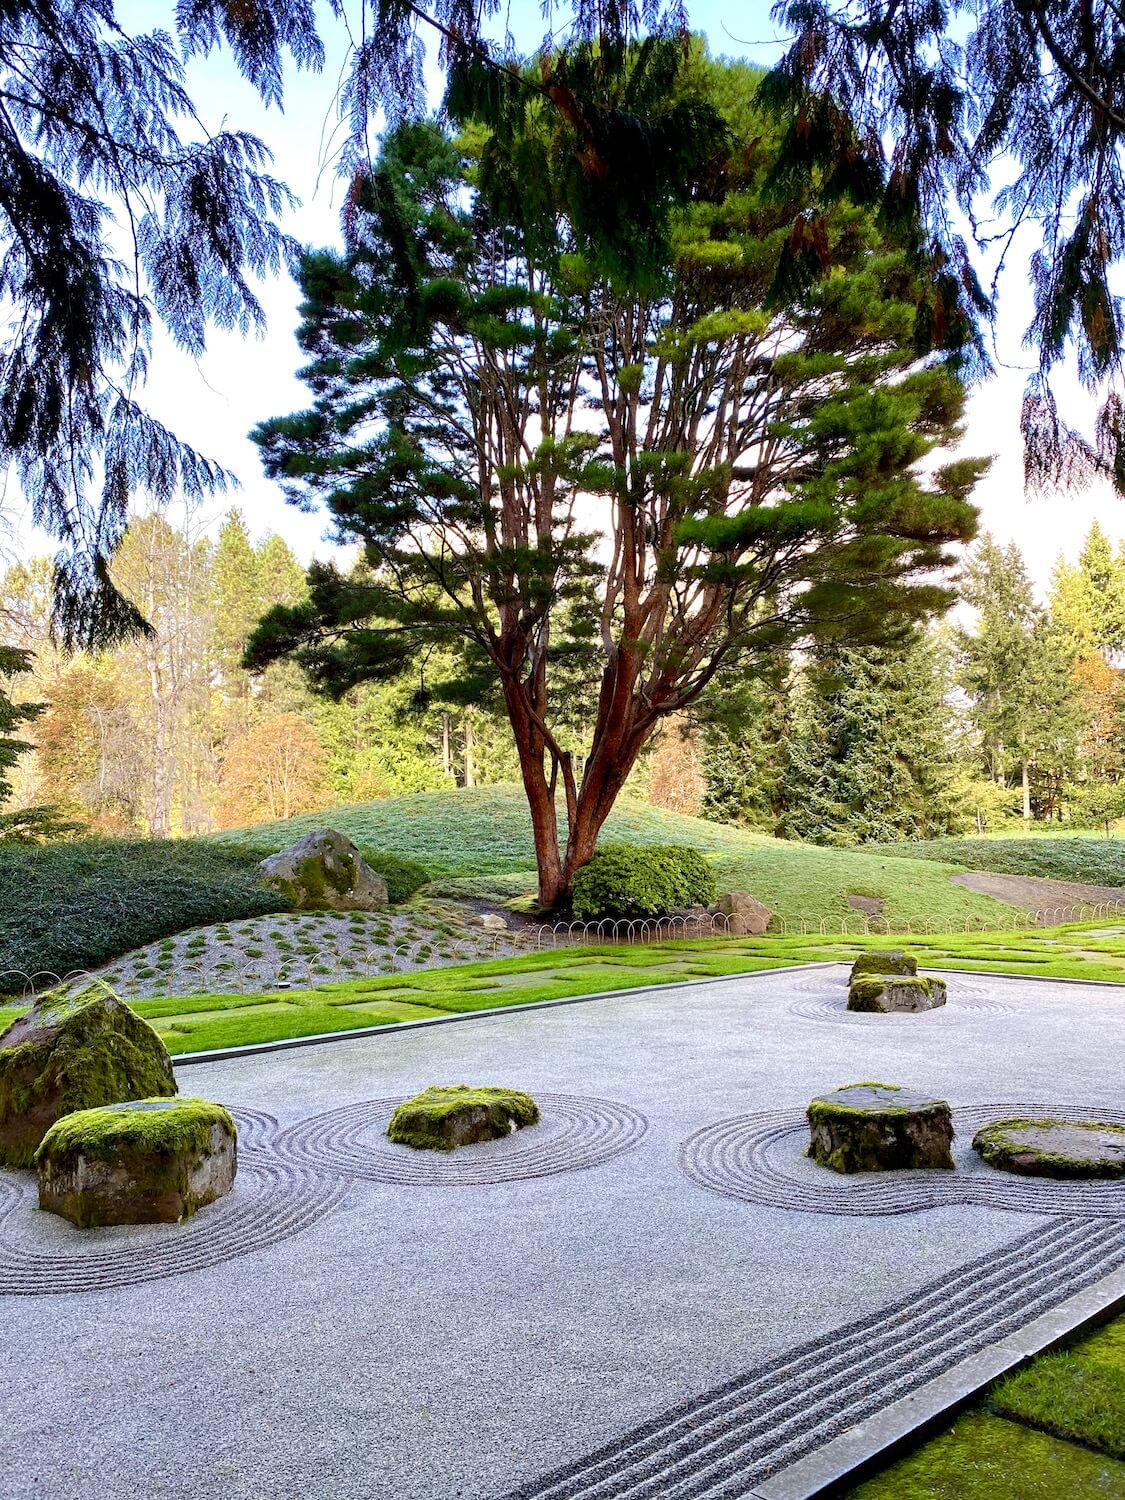 The garden outside the Japanese Guest House on the property of the Bloedel Reserve offers a peaceful escape in the zen of the raked gravel garden, surrounded by green squares of grass and alternating concrete.